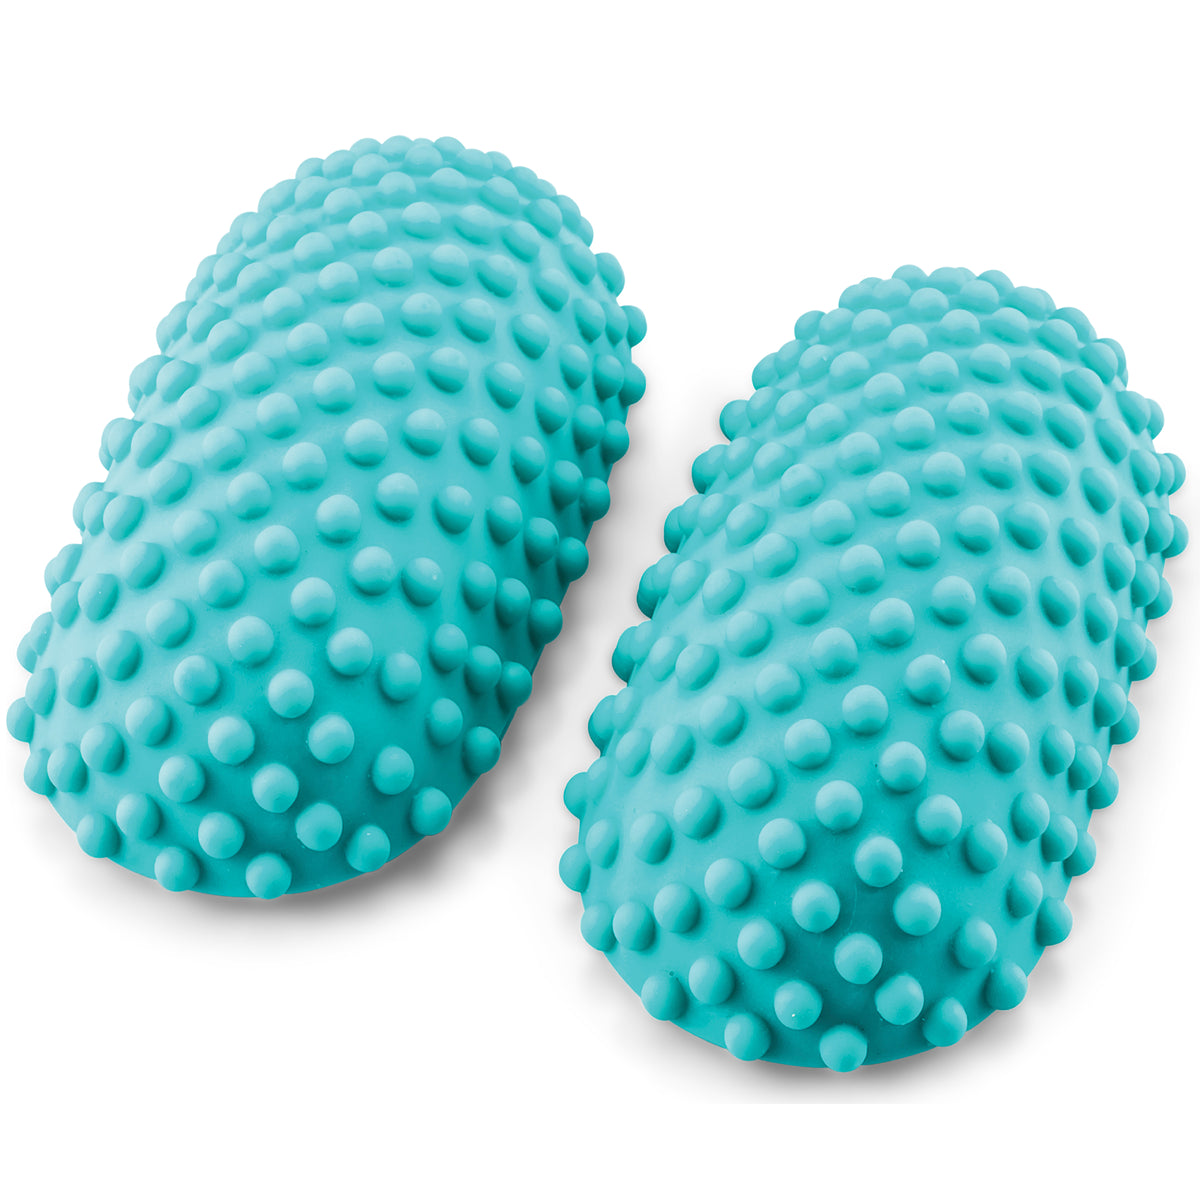 SoleHealers™ Foot Stretcher and Massager for Plantar Fasciitis and Total Foot Pain Relief